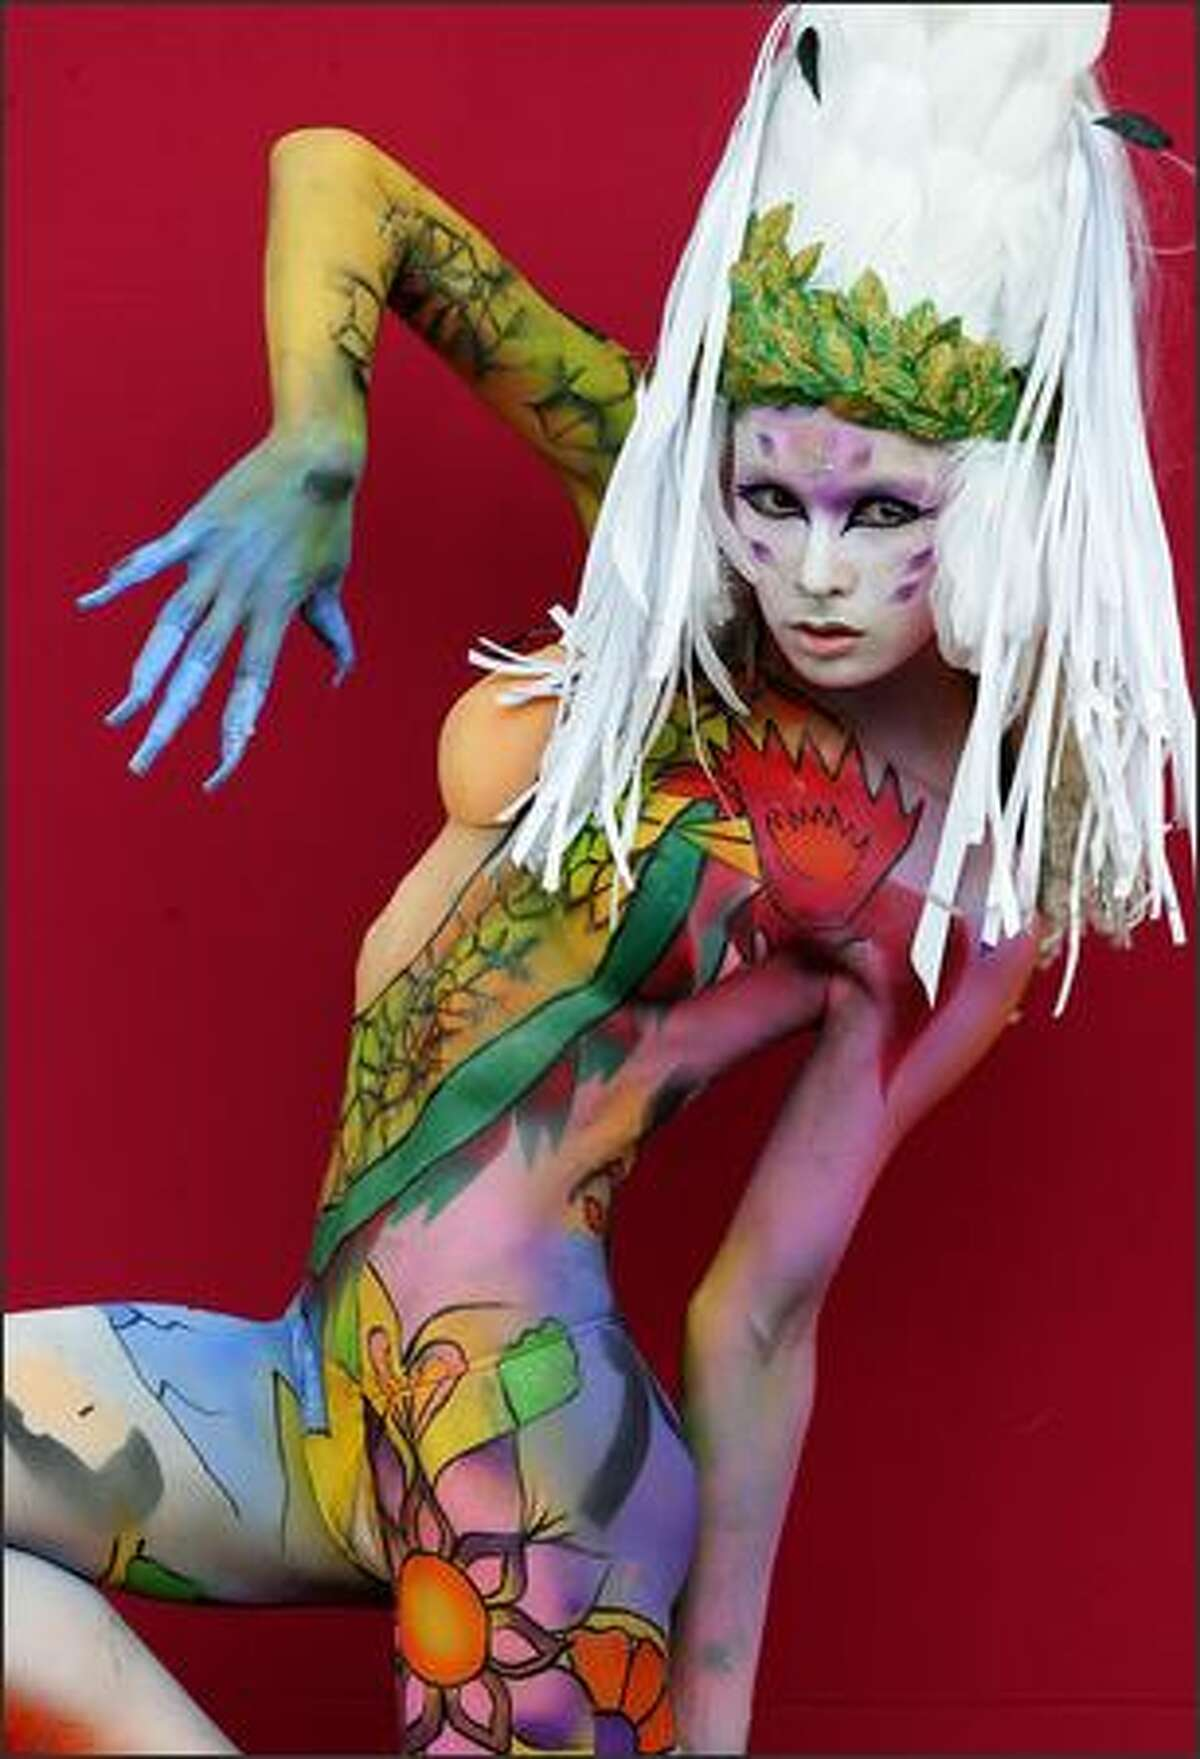 DAEGU, SOUTH KOREA - AUGUST 29: A model participates in the 2008 World Body Painting Festival Asia at World Cup Stadium on August 29, 2008 in Daegu, South Korea. The festival is the largest in the field of body painting and introduces the art form to thousands of visitors each year.